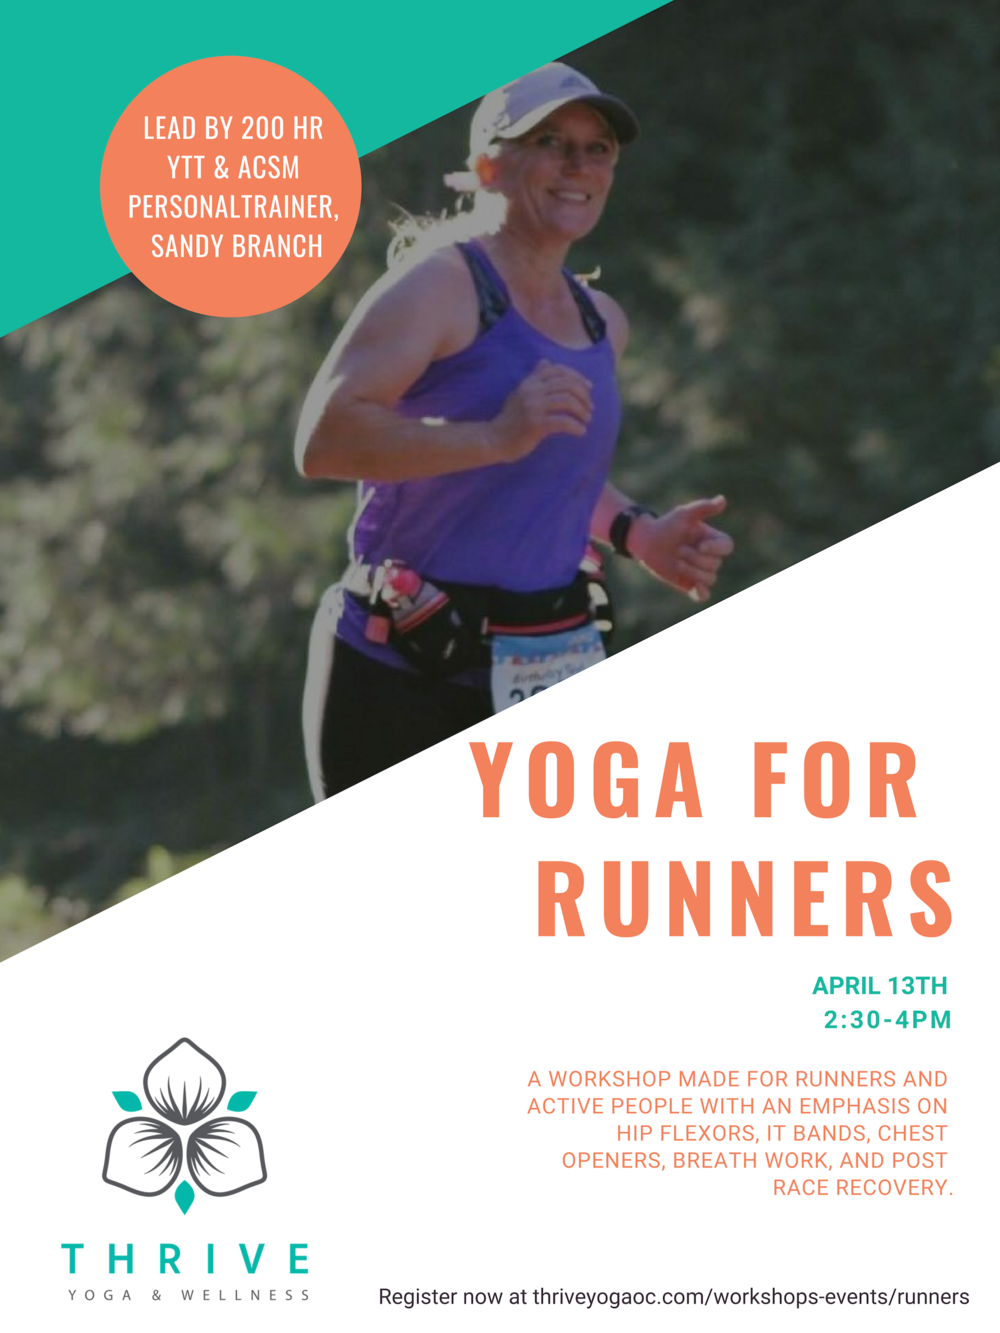 Those piles of miles on the body can greatly benefit from a focused yoga practice.  This workshop is focused for all kinds of active populations from the casual walker to marathon runner (cyclists will benefit as well). There will be emphasis on hip flexors, IT bands, chest openers, breath work, and post race recovery.  Workshop led by 200 hr YTT & ACSM Personal Trainer Sandy Branch. Sandy has been a runner for over 10 years with lots of racing experience including 2 marathons, several halves, 10ks, and 5ks. She is currently in training for a marathon in June.